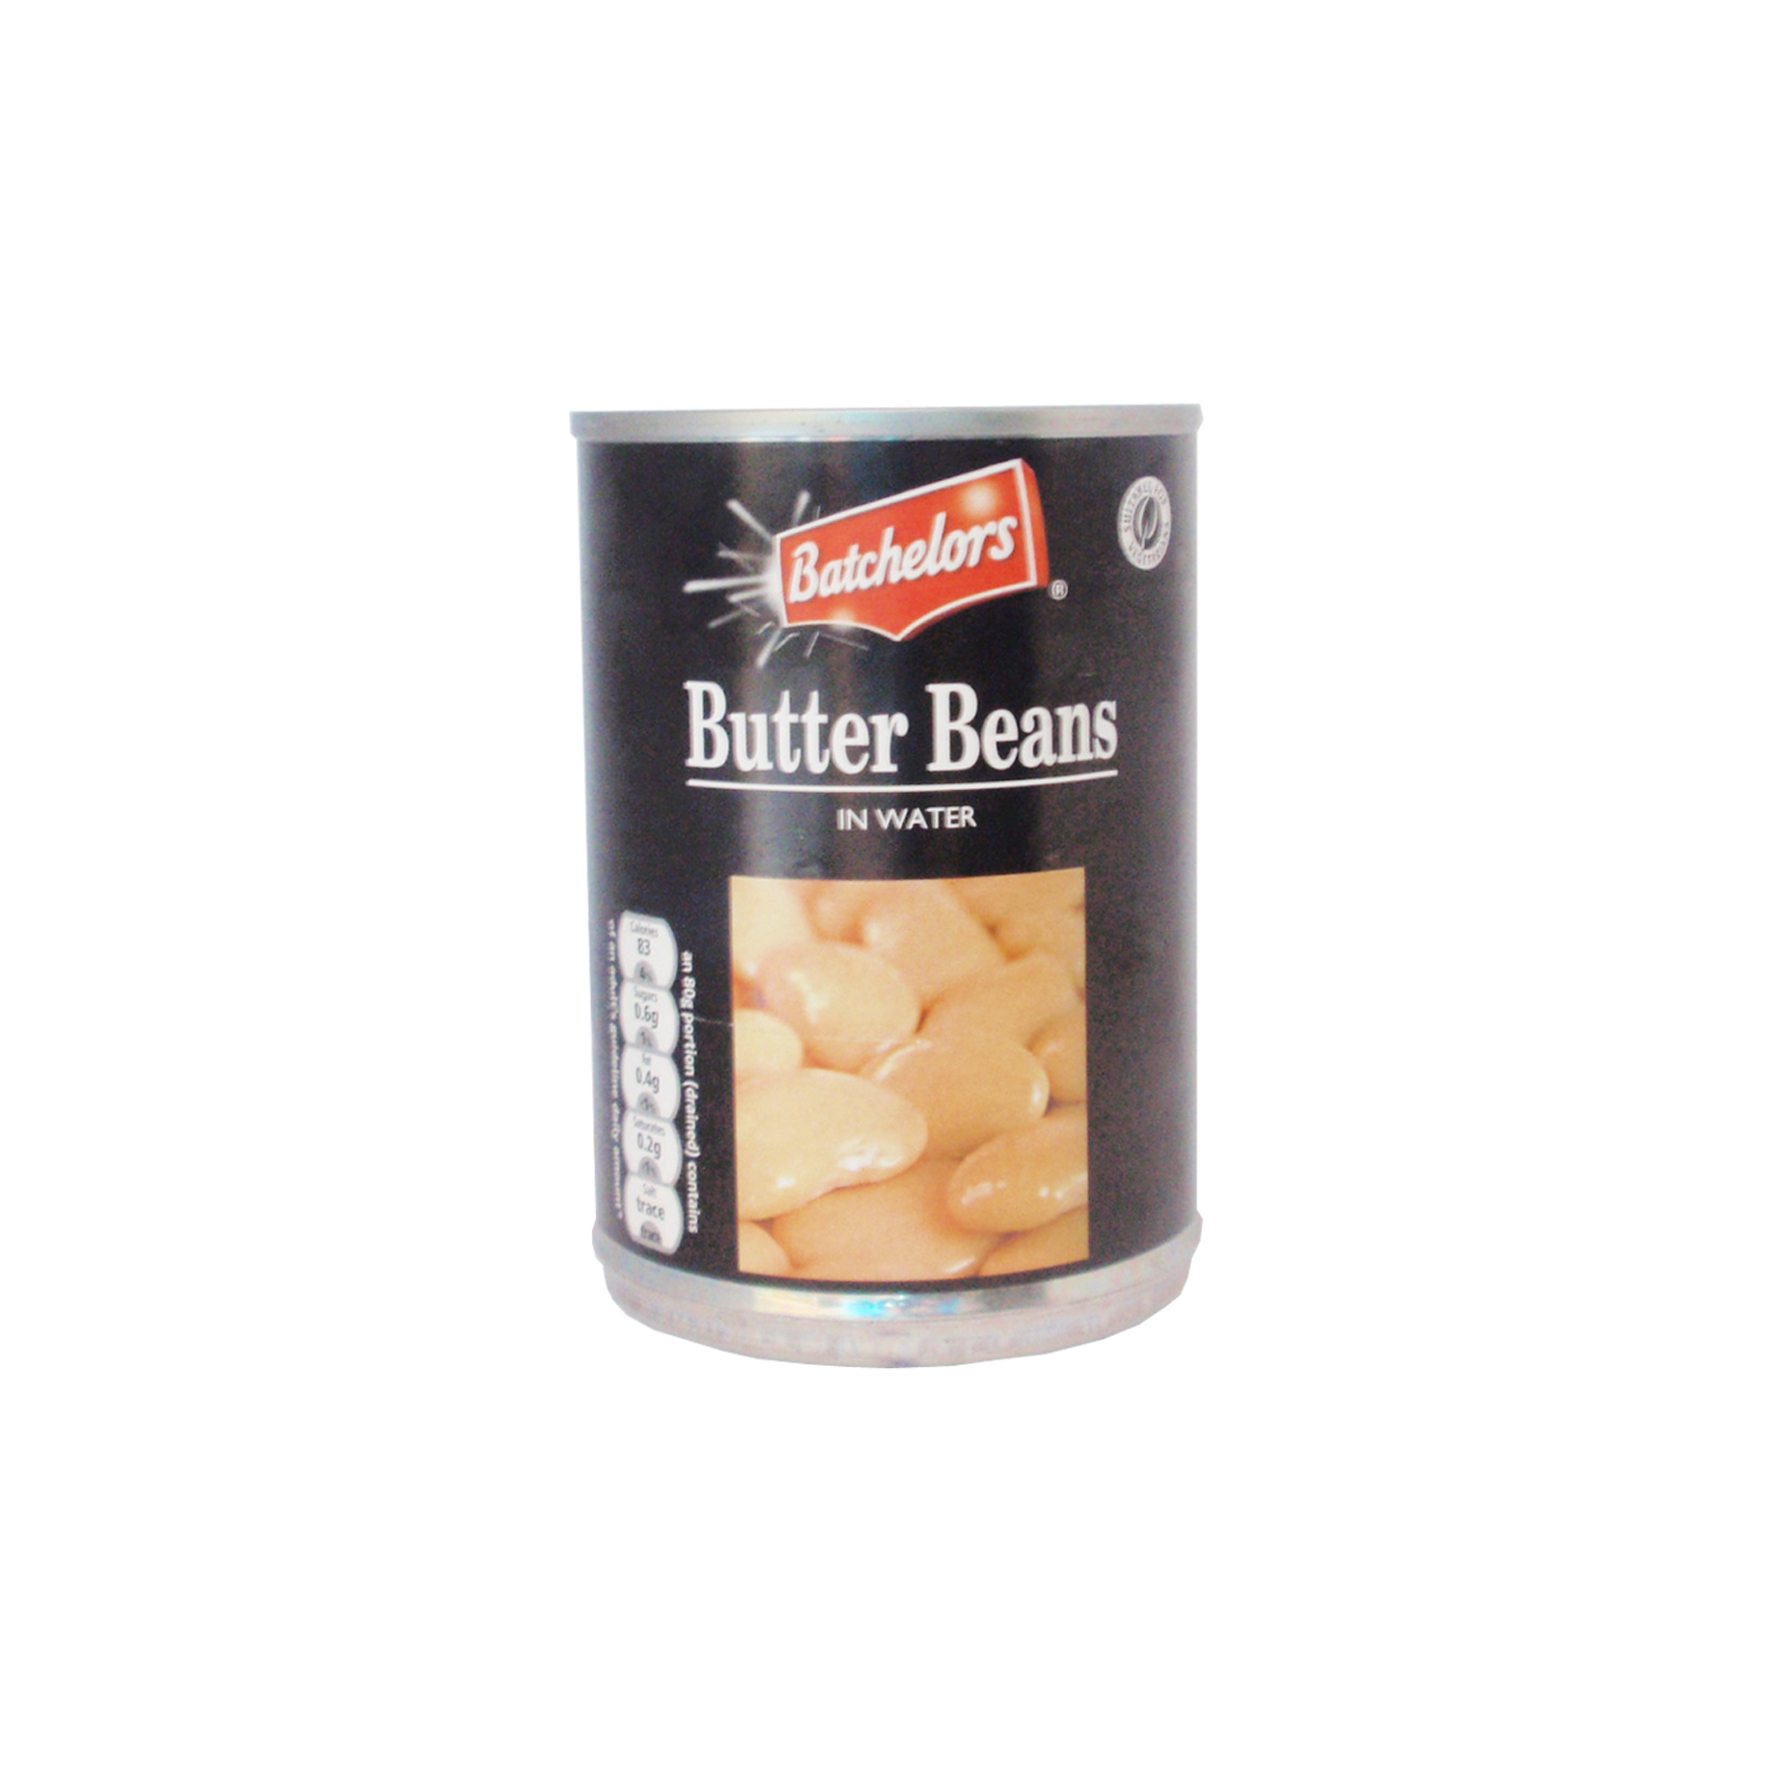 Batchelors butter beans/alubias manteca